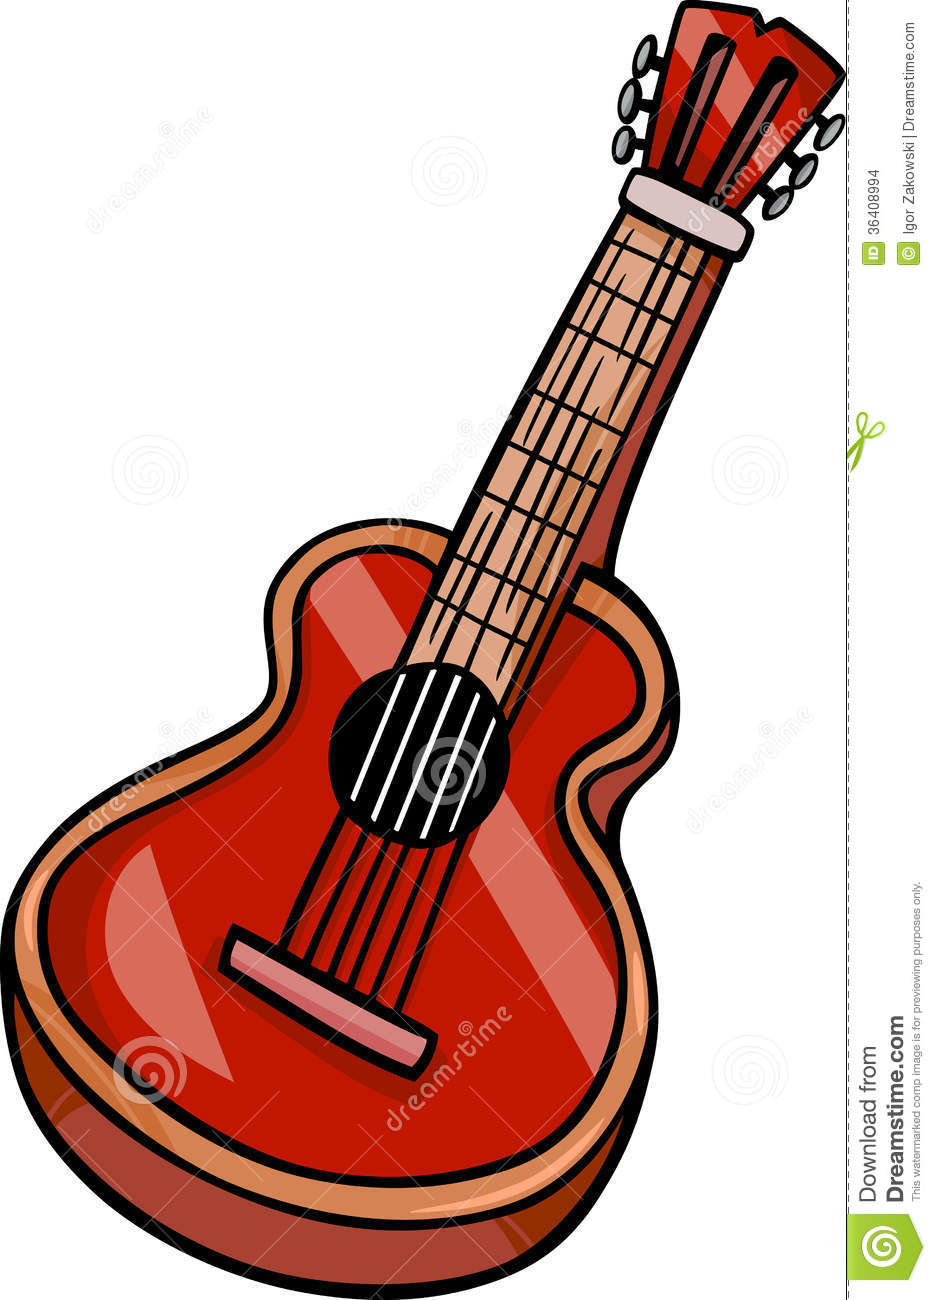 Cartoon Illustration of Acoustic Guitar Musical Instrument Clip Art.